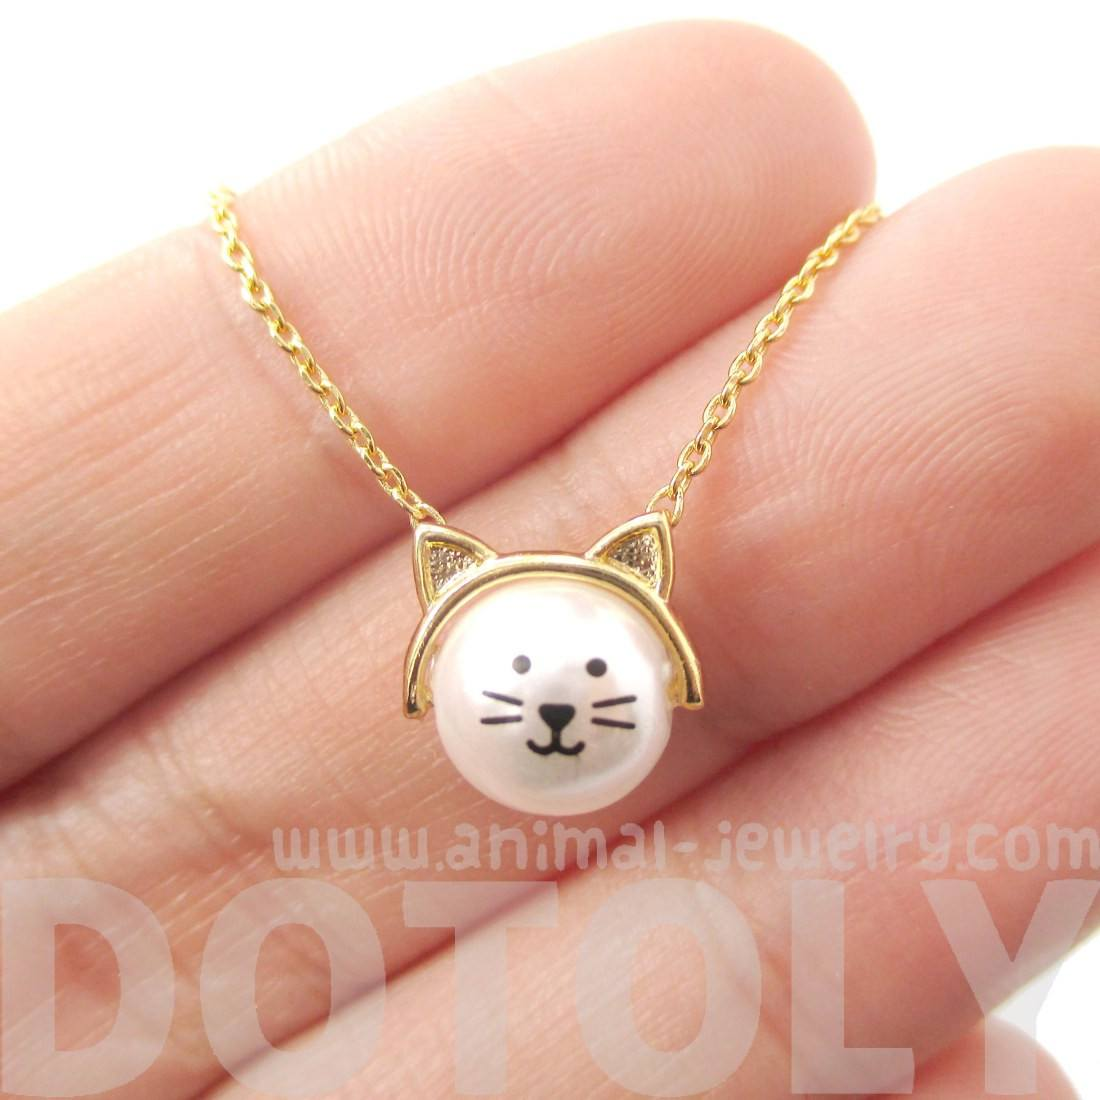 Adorable Kitty Cat Face Shaped Pendant Necklace in Gold